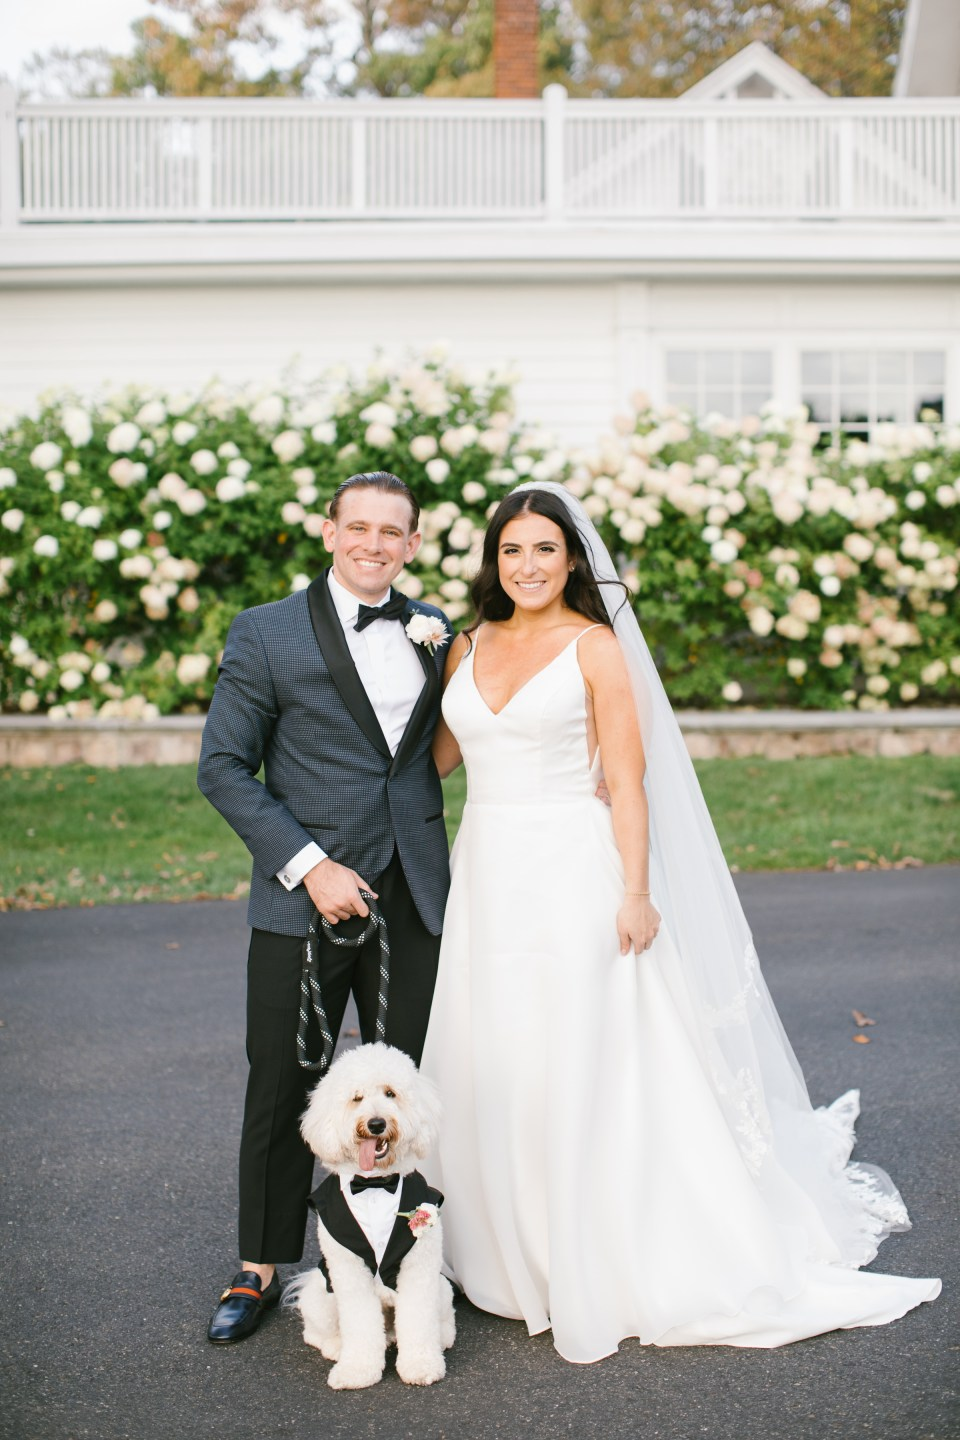 Ashley Mac Photographs photographs bride and groom with dog